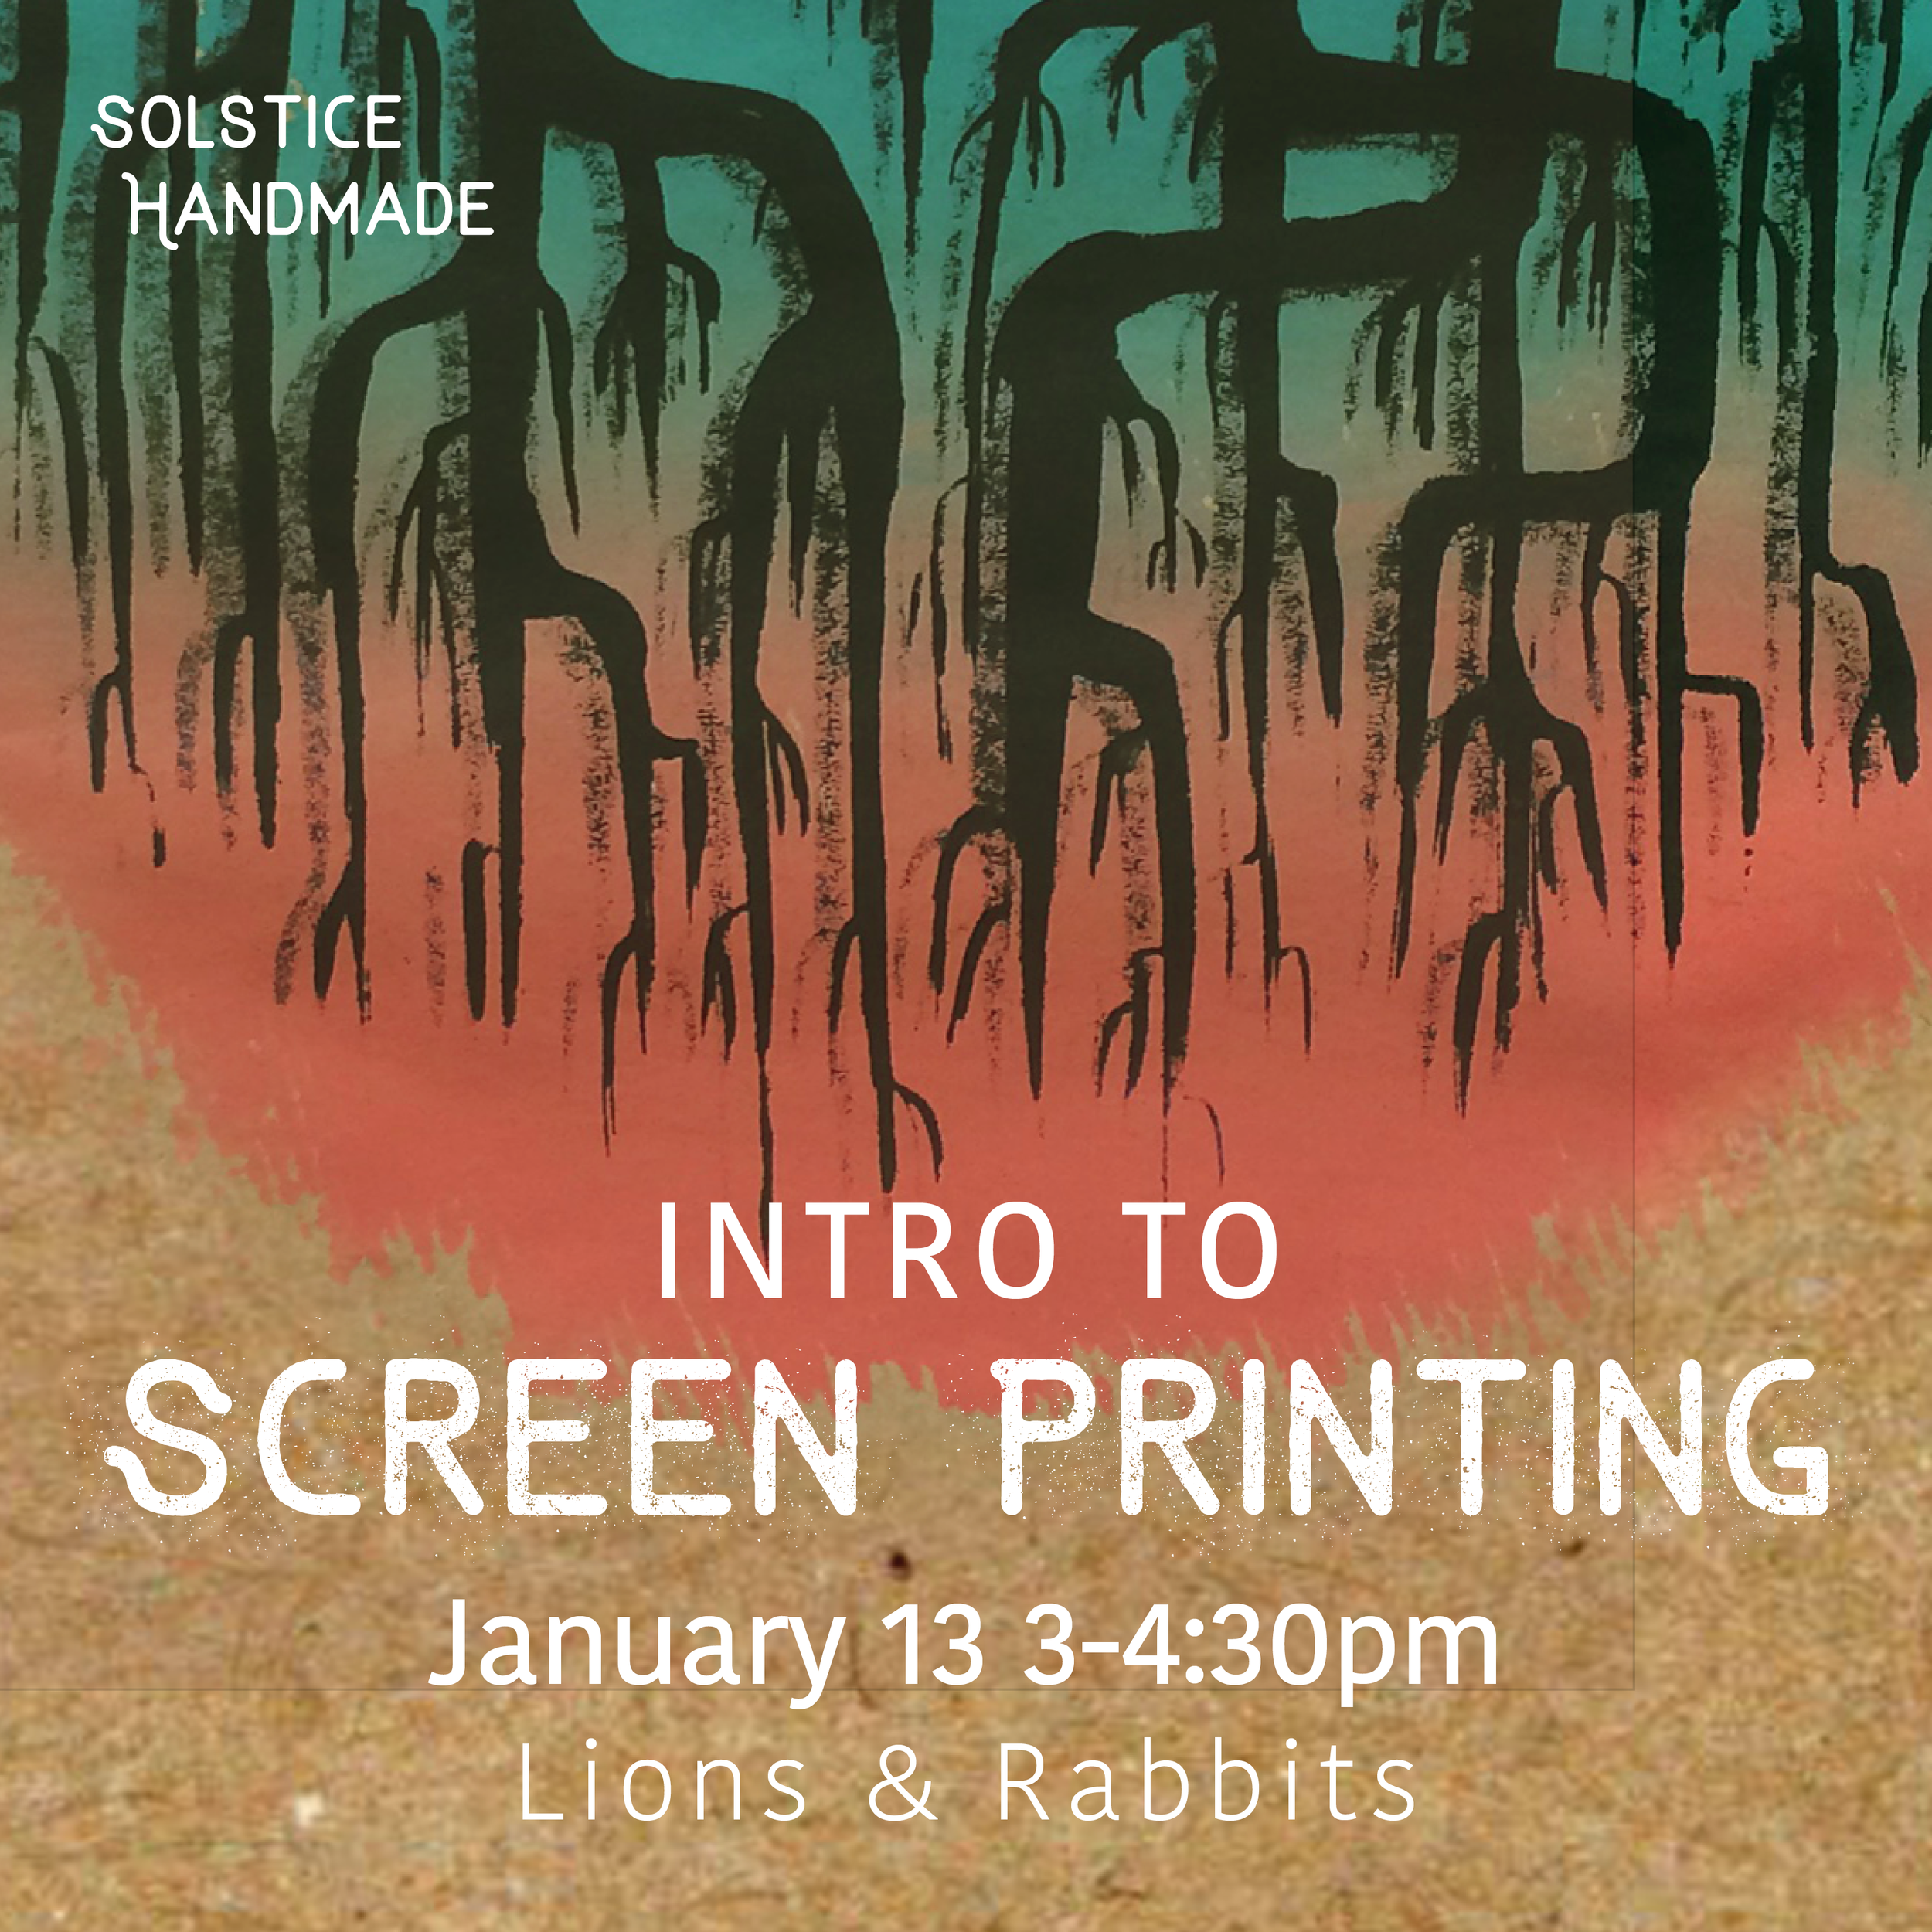 screenprinting-Insta.png